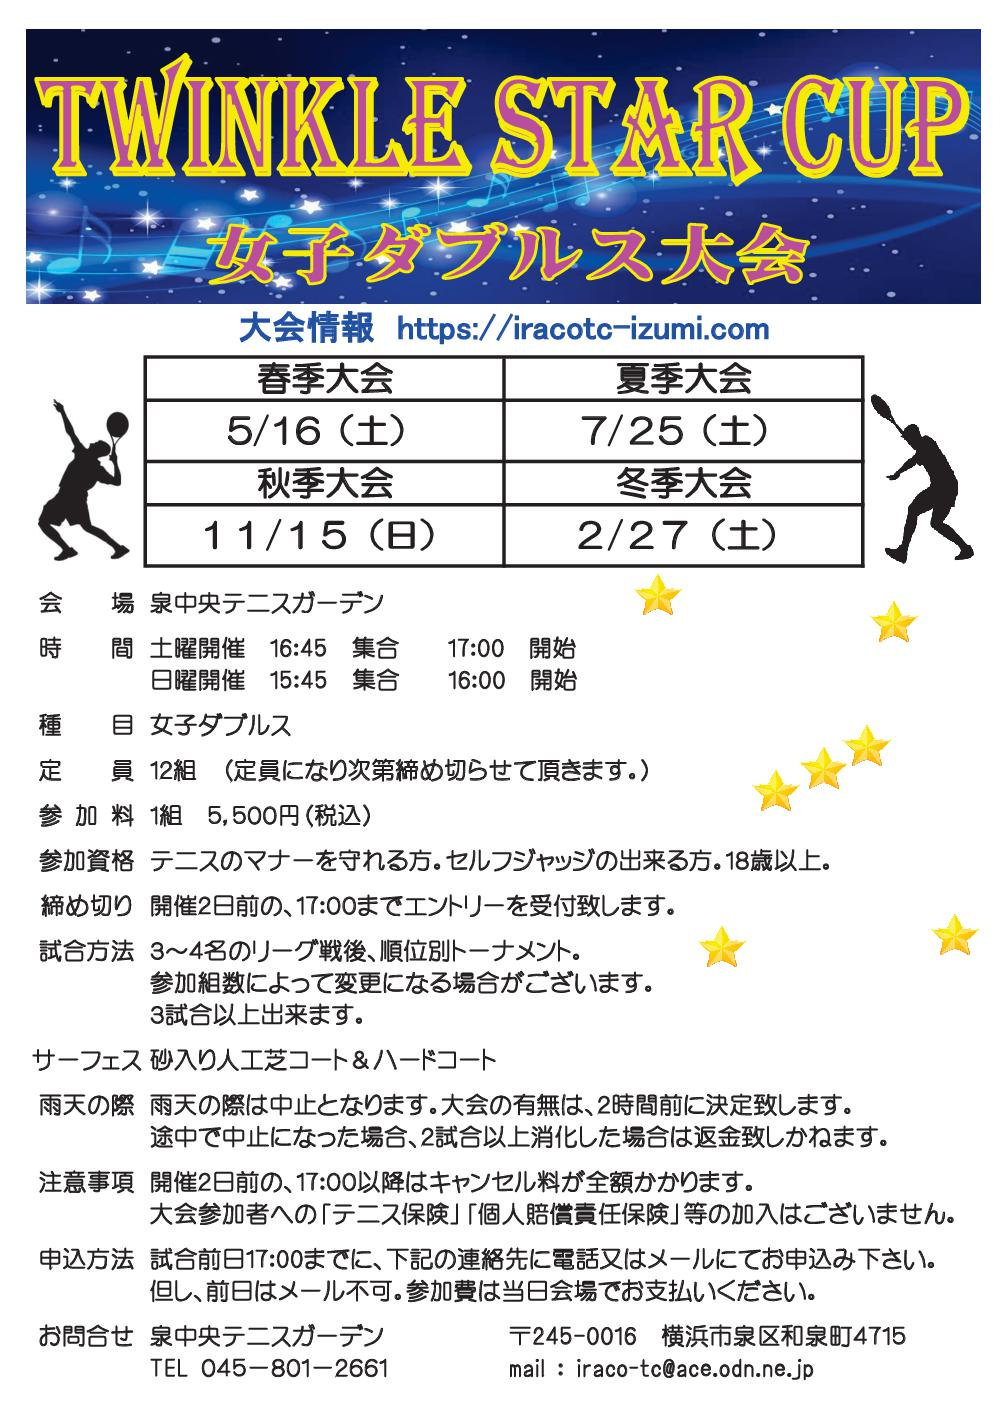 06 - 🚺🚺「TWINKLE STAR CUP」女子ダブルス